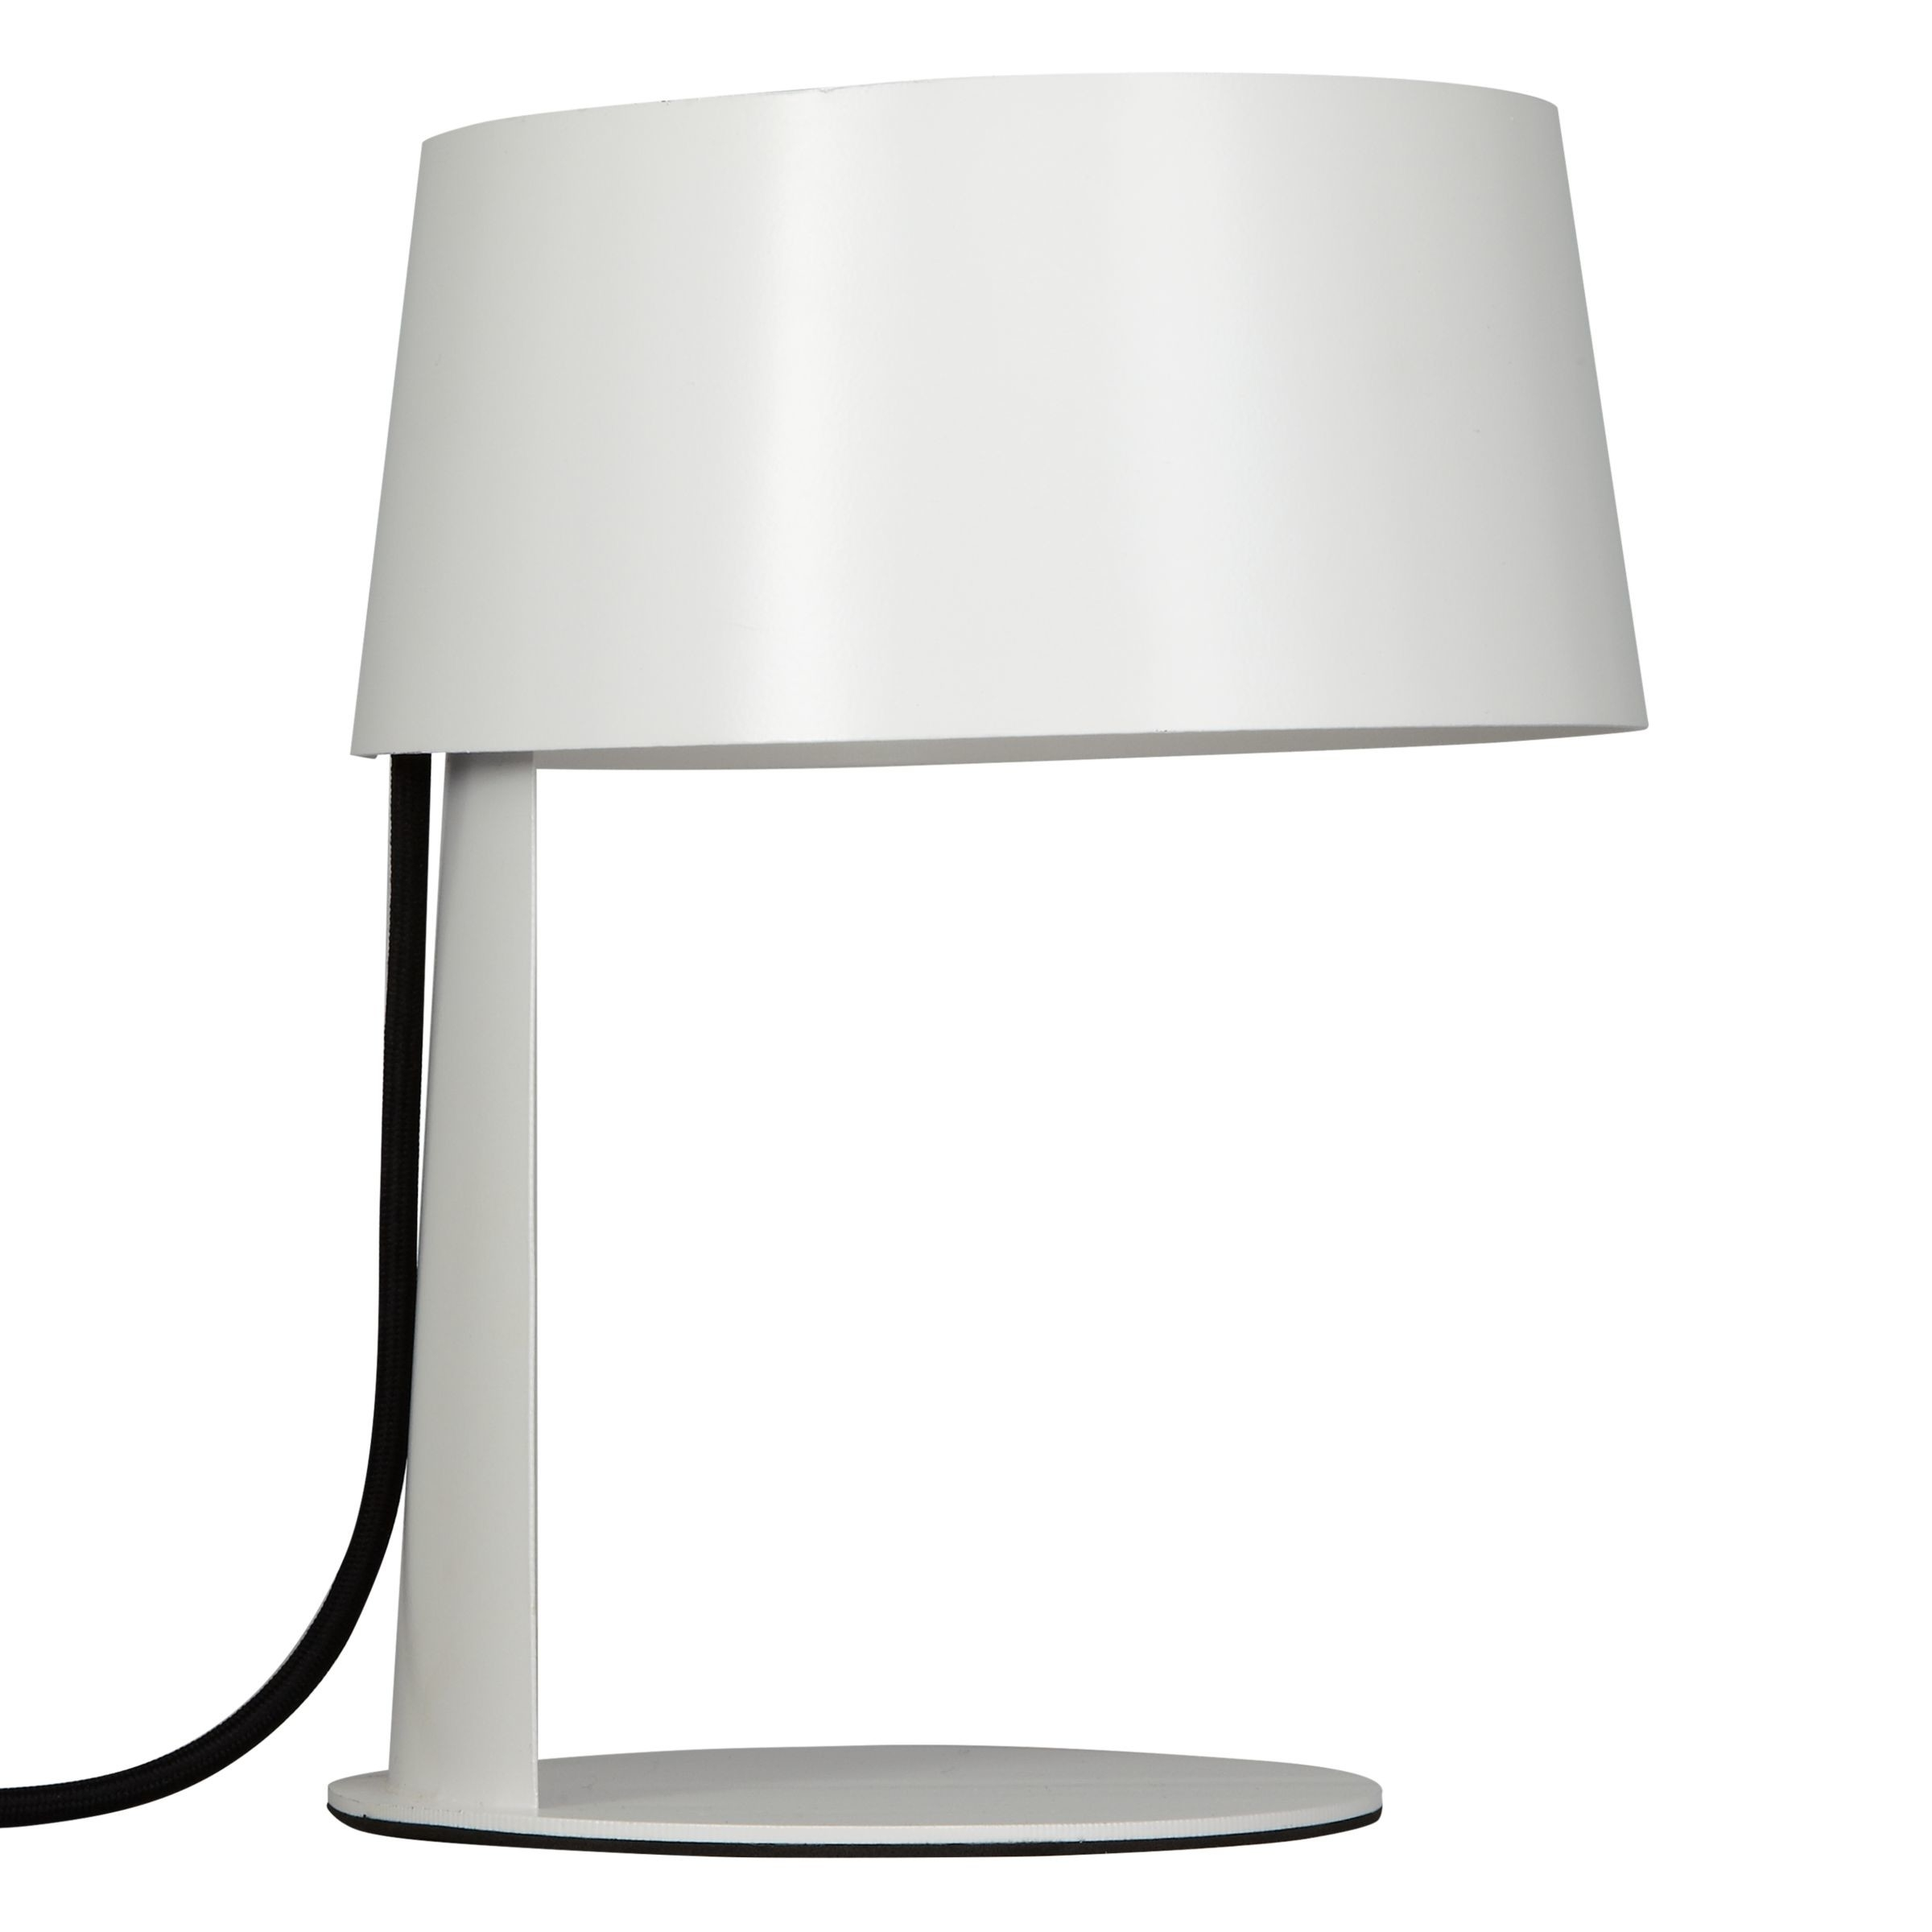 Table Lamps Living Room John Lewis Specs Price – Fight For Life | #19915 In John Lewis Table Lamps For Living Room (View 13 of 15)